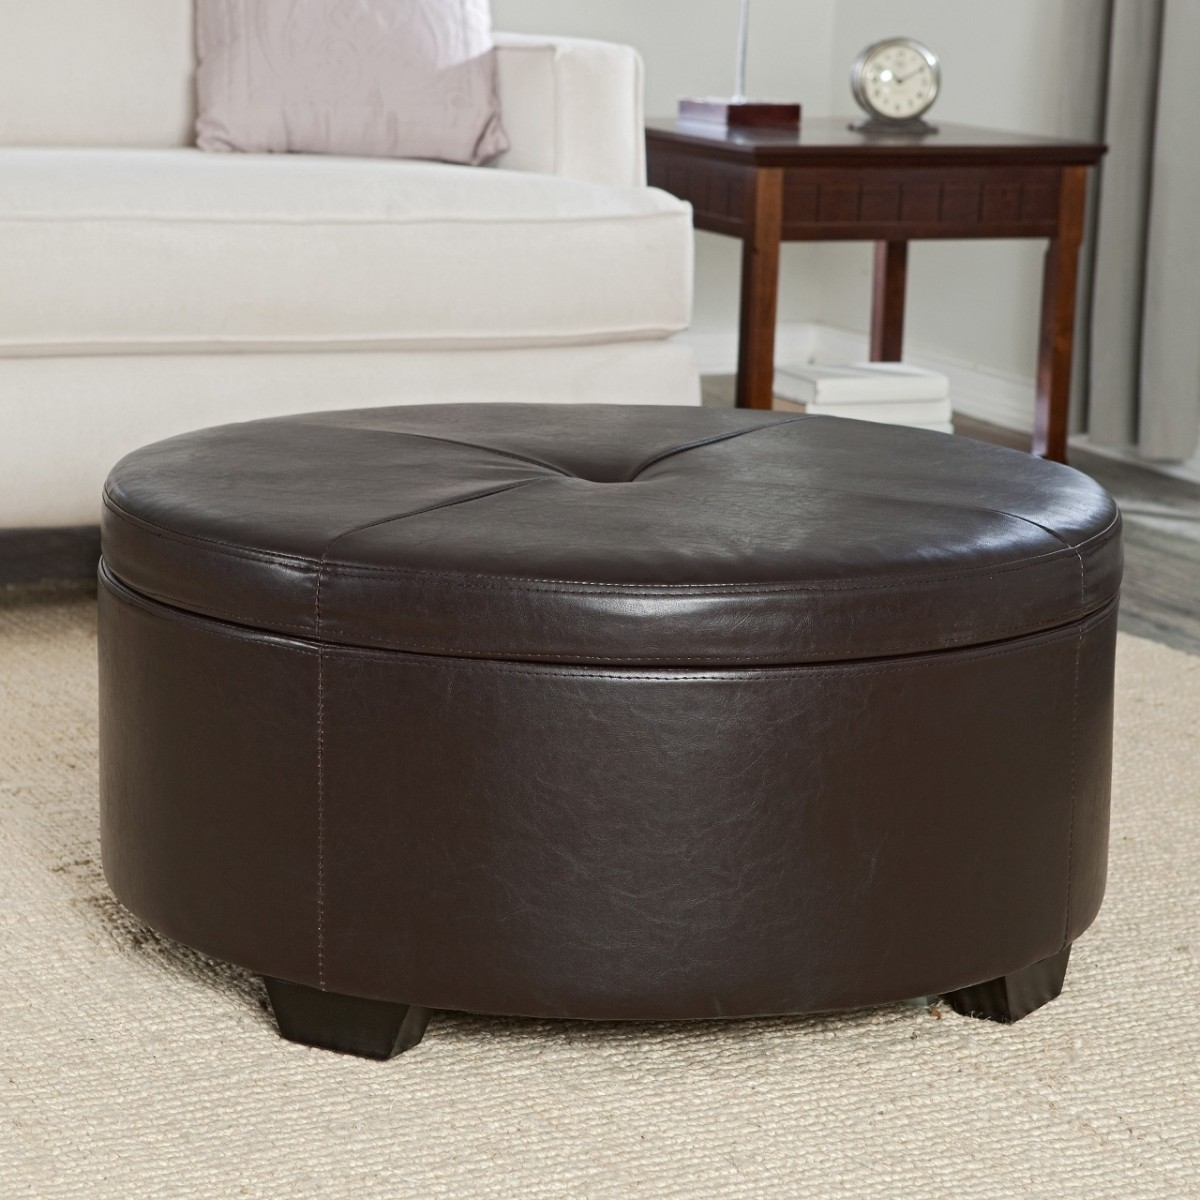 Round Storage Ottoman | Tufted Leather Ottoman | Cocktail Ottoman with Shelf